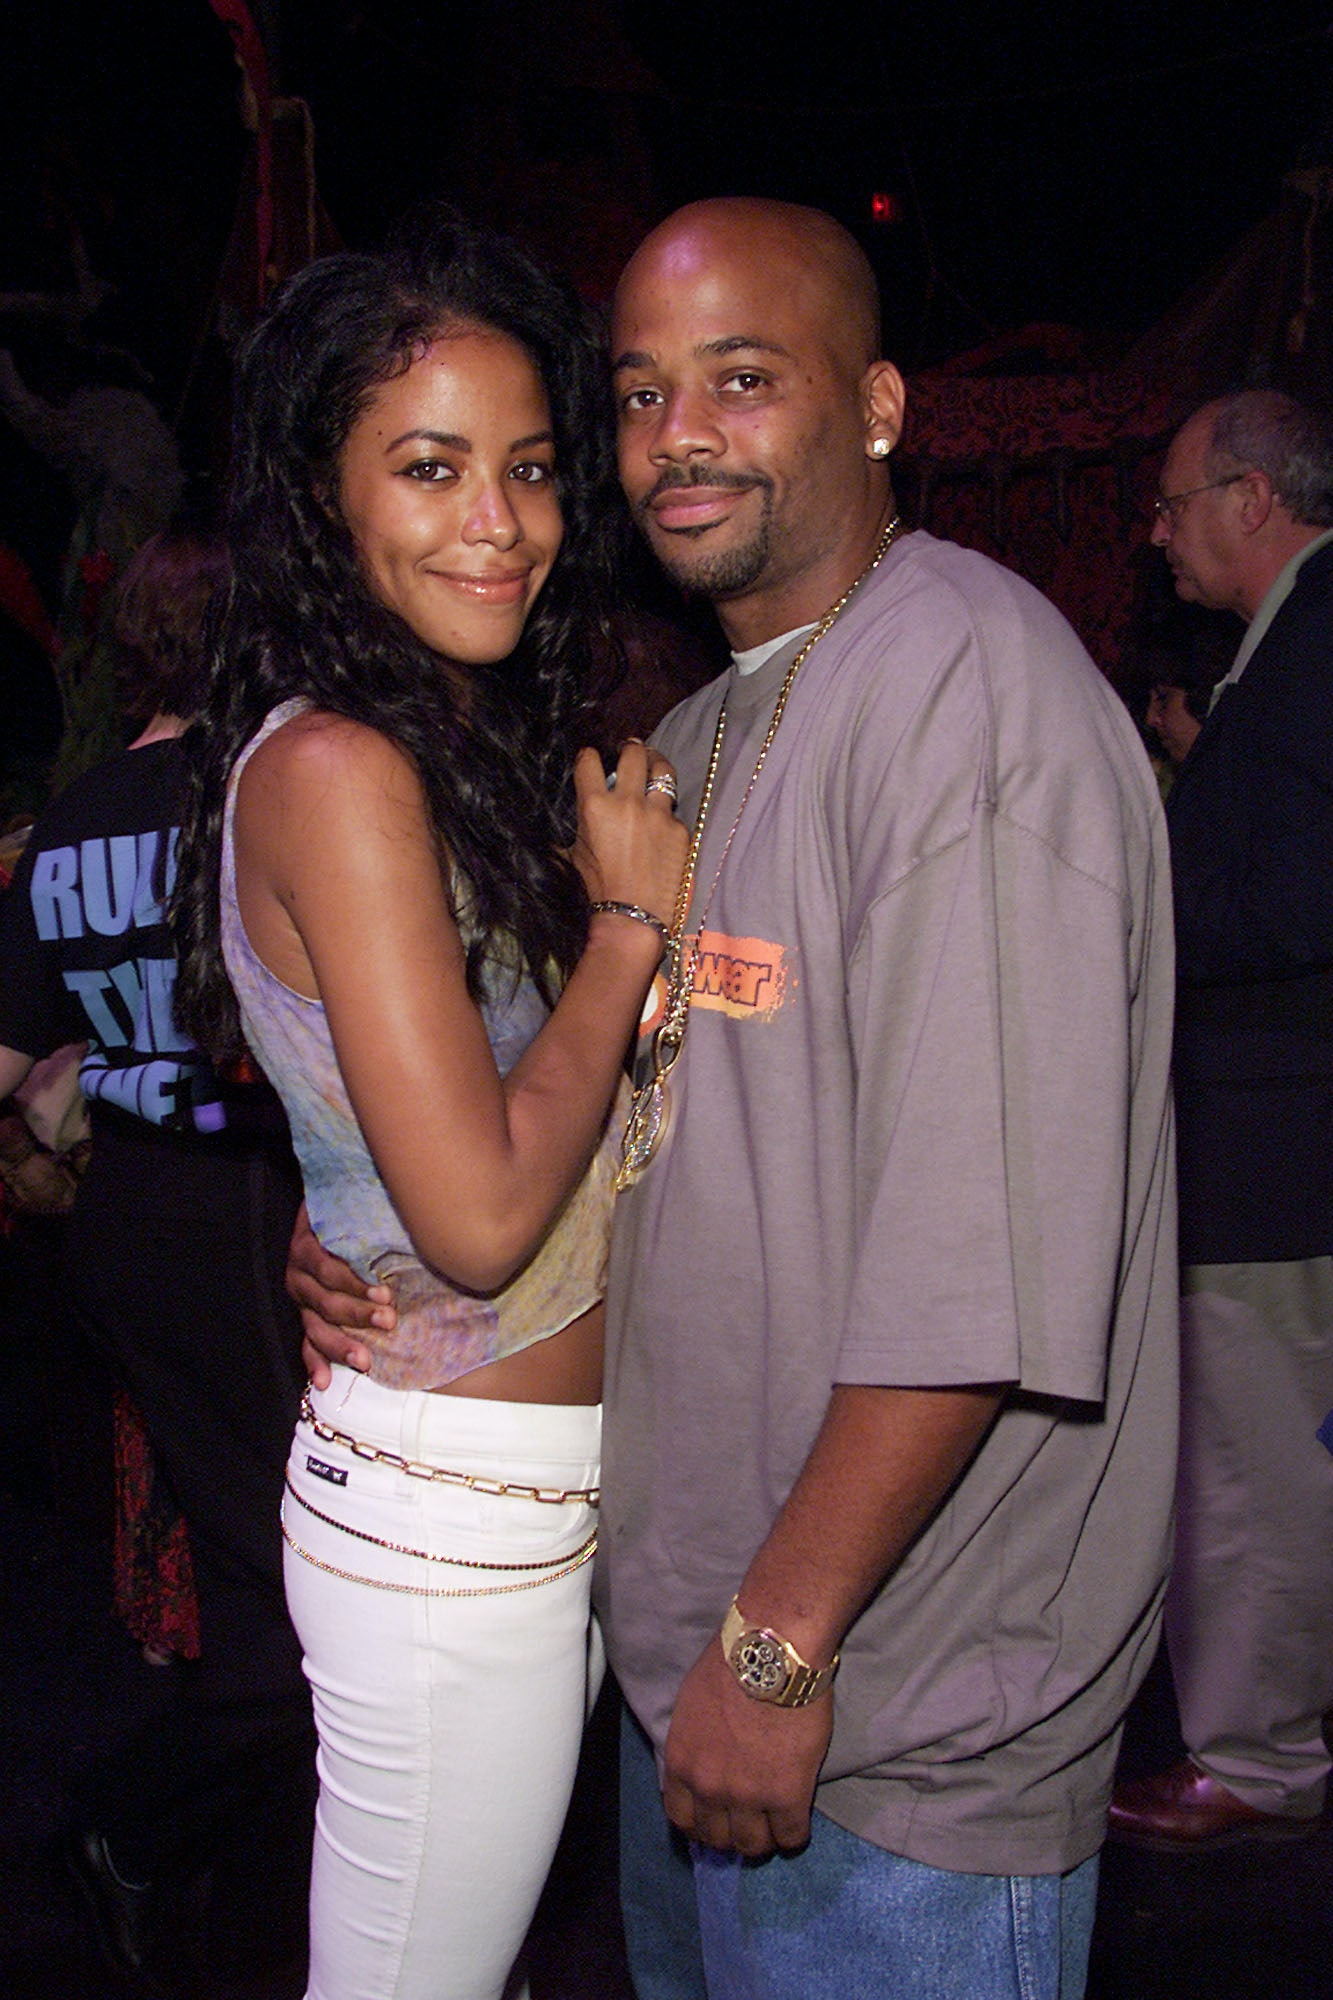 Dame dash on aaliyah dating jay z